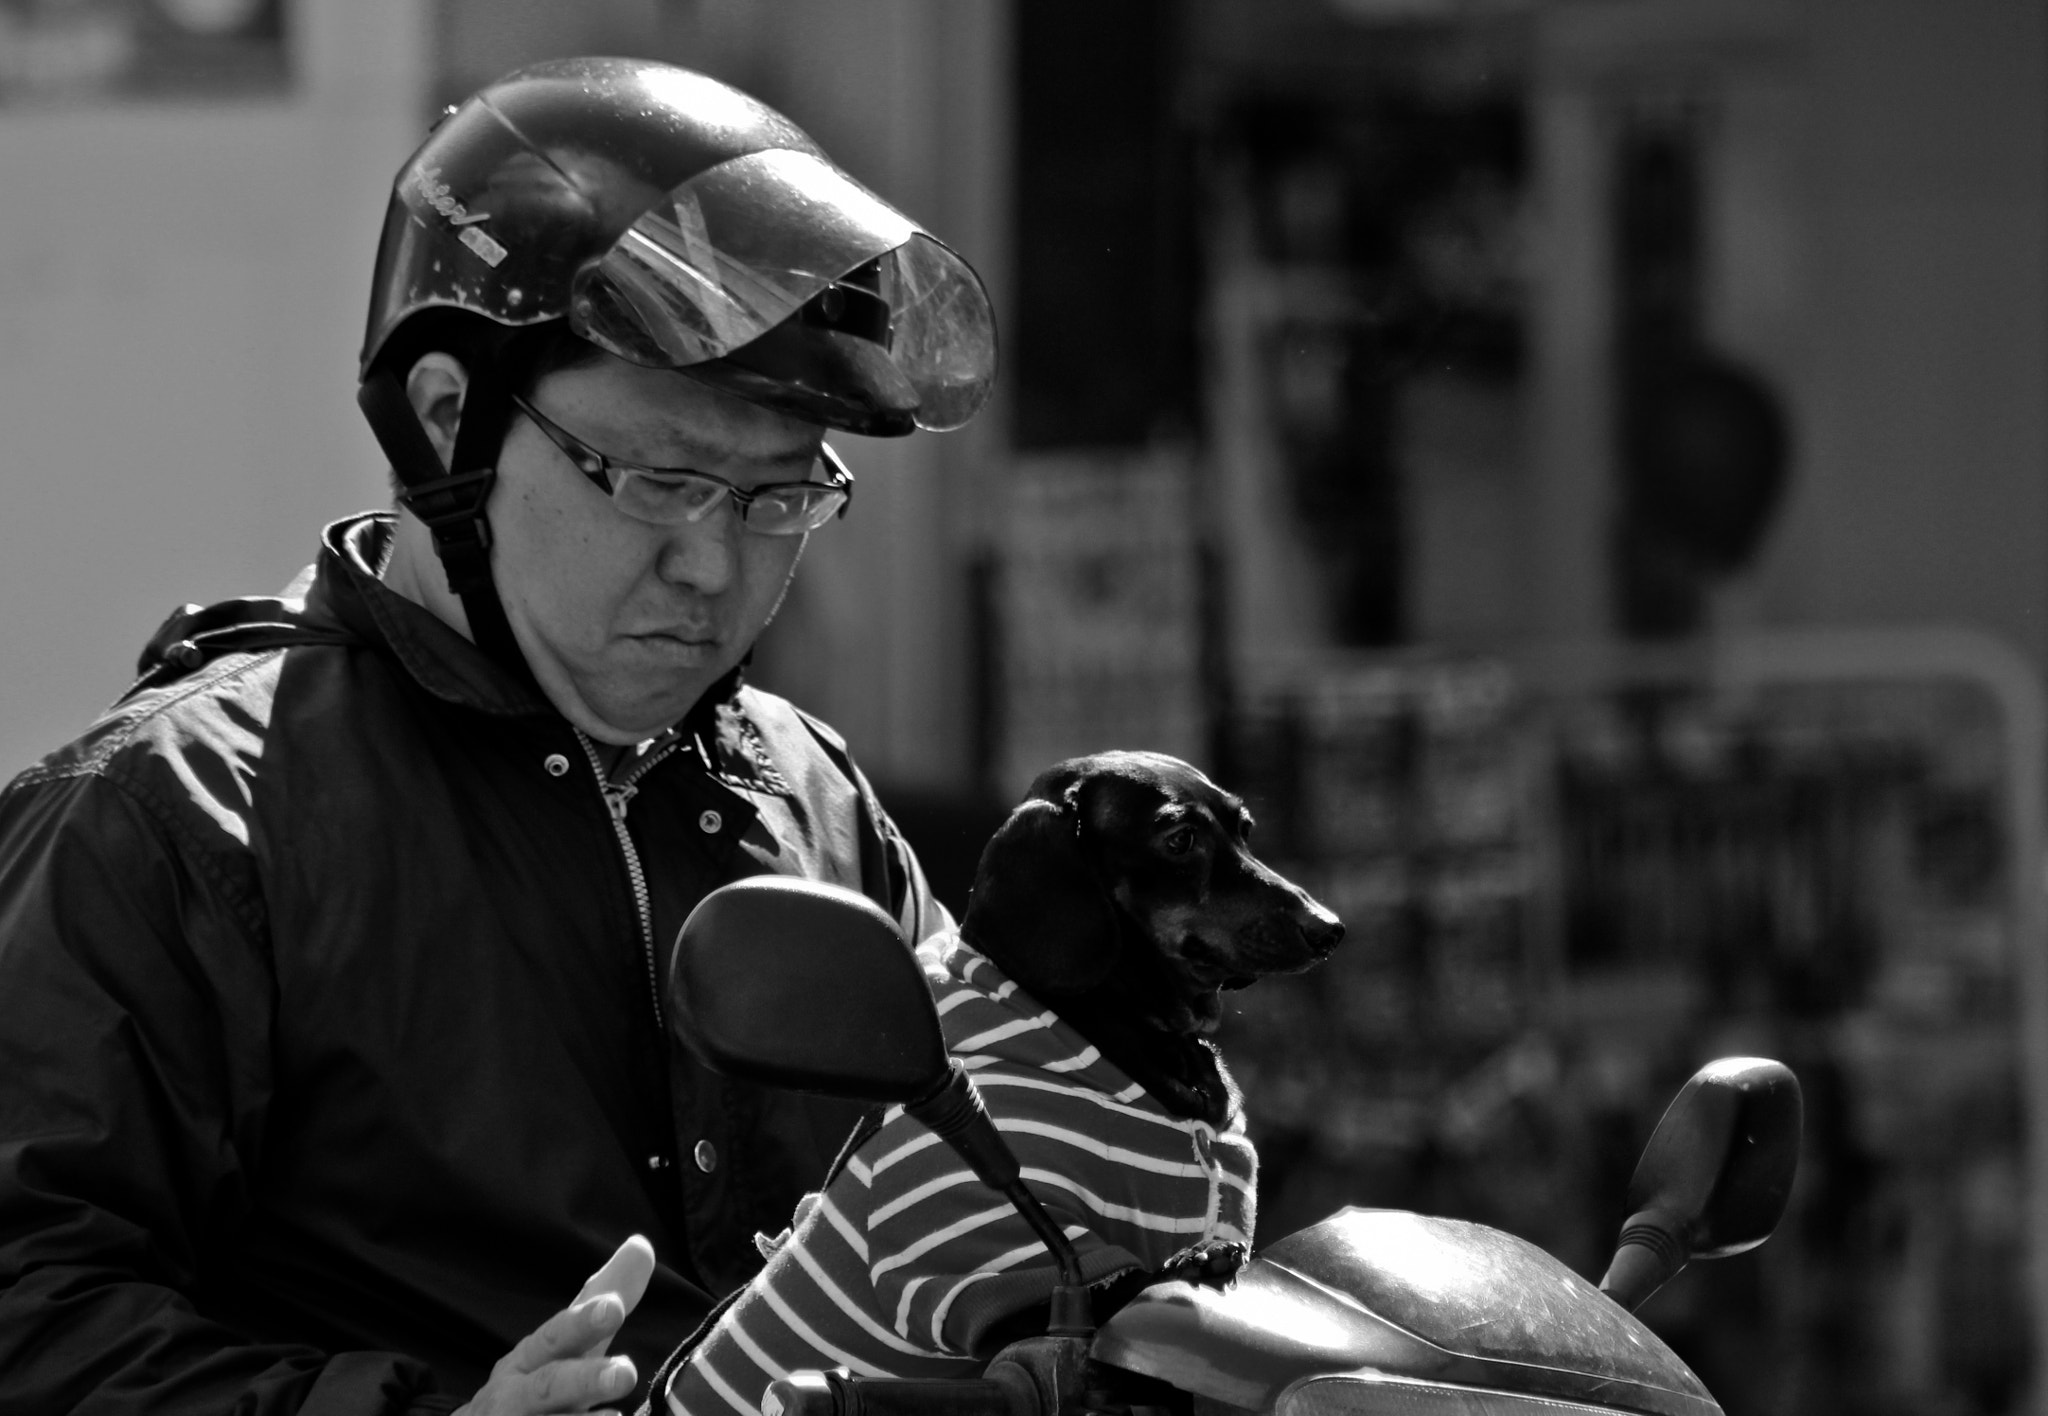 Photograph Man's Best Friend by KimJ Trebble on 500px